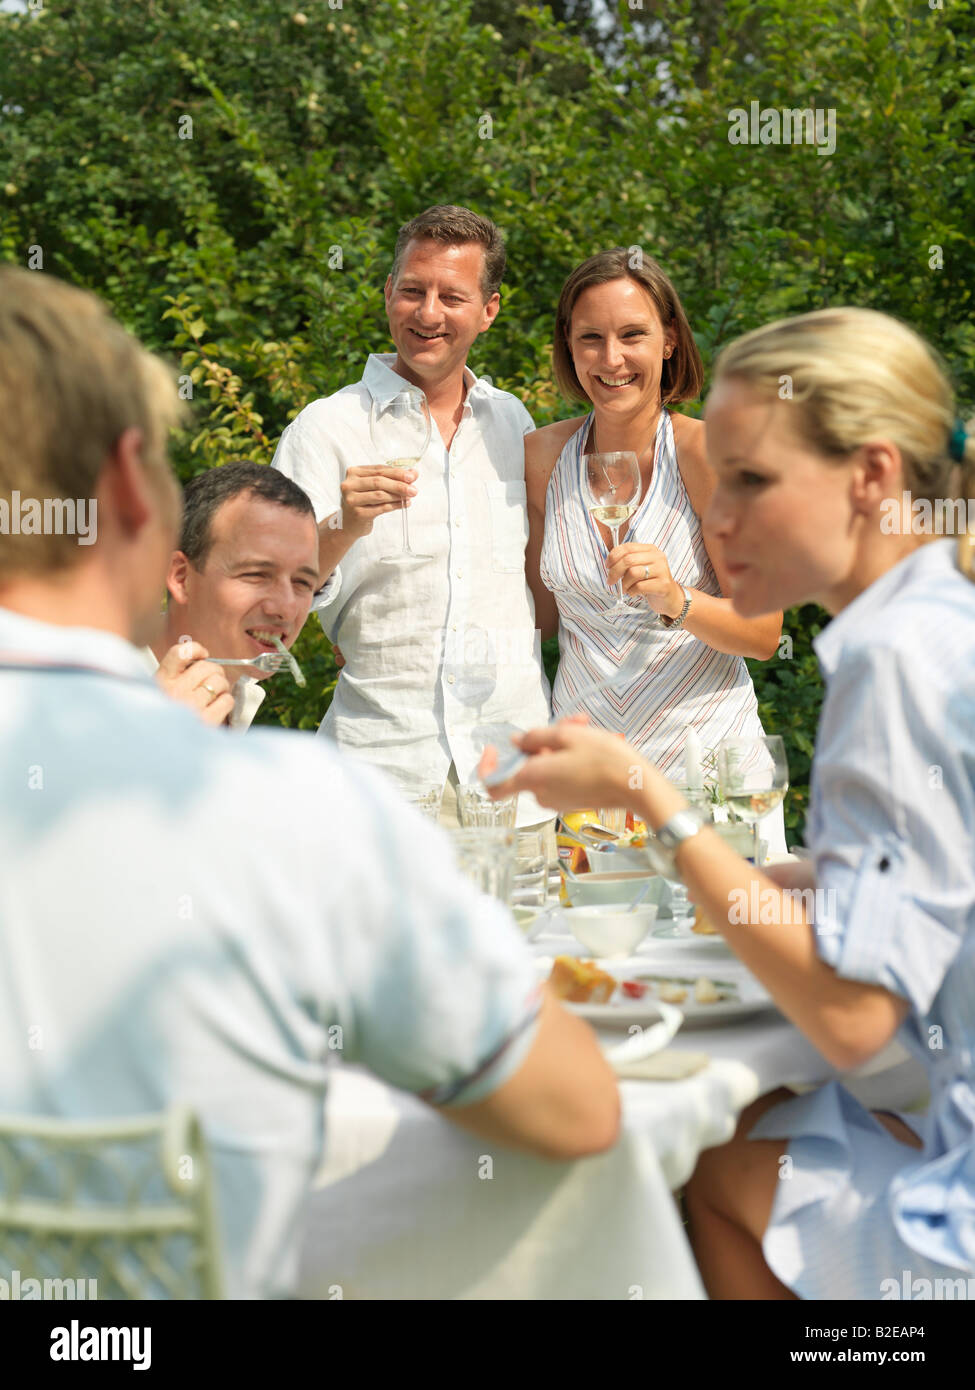 Three couples celebrating at a garden party - Stock Image